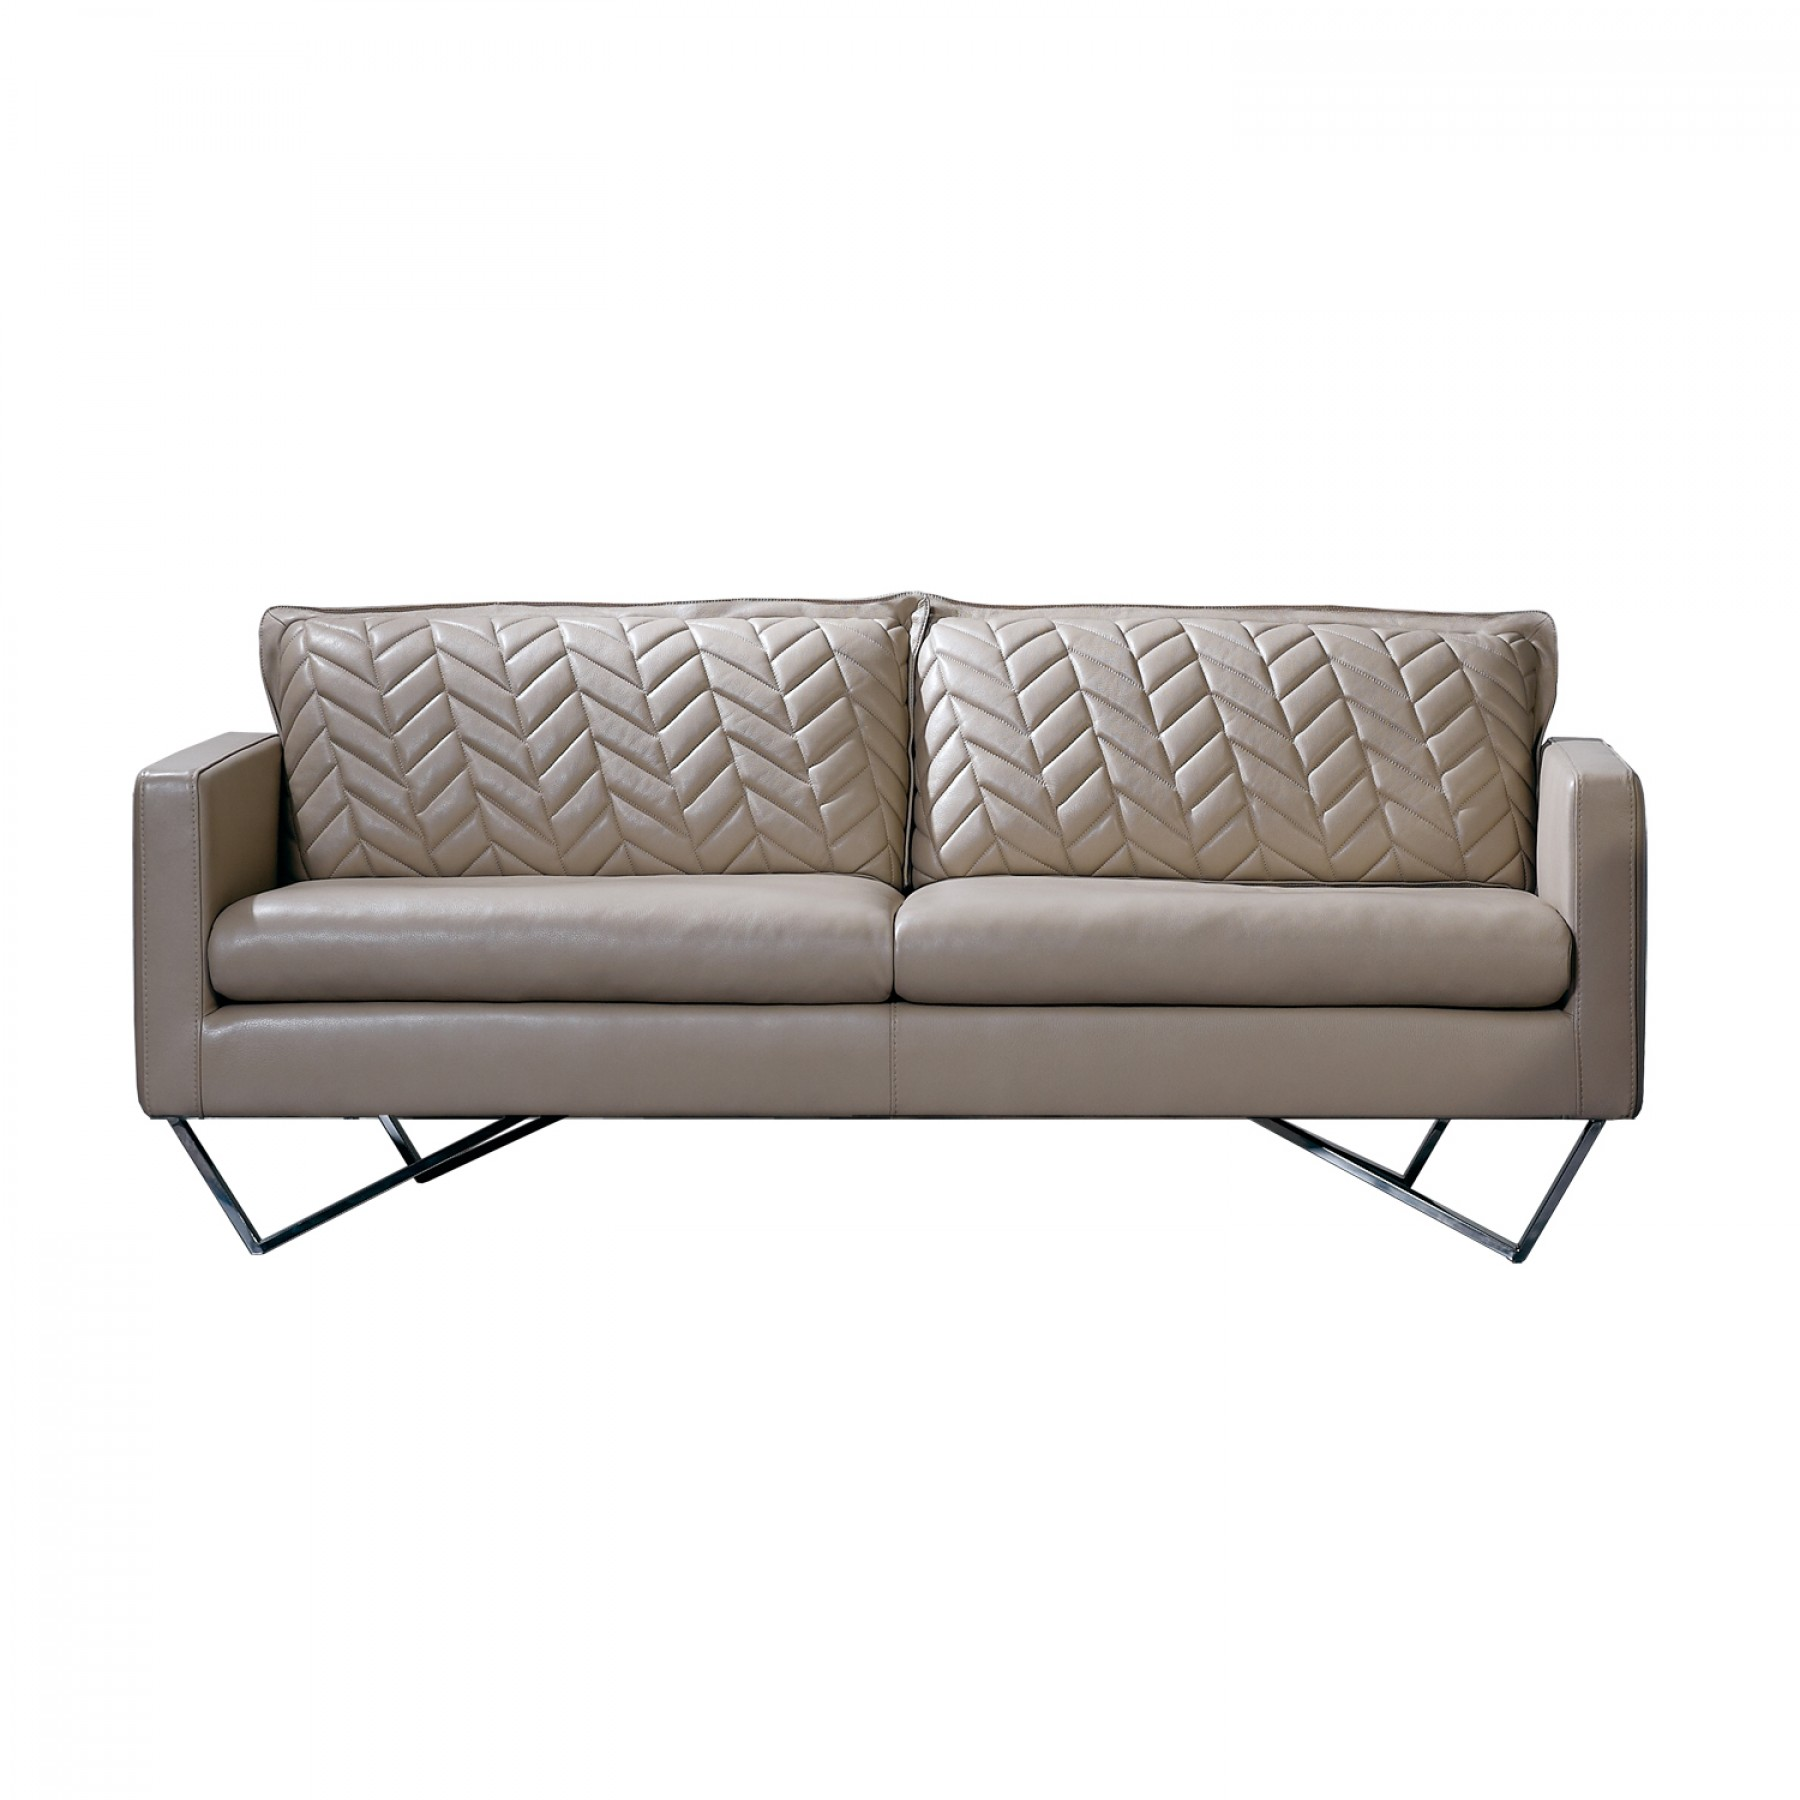 Snello Patterned 2 Seater Sofa Beyond Furniture